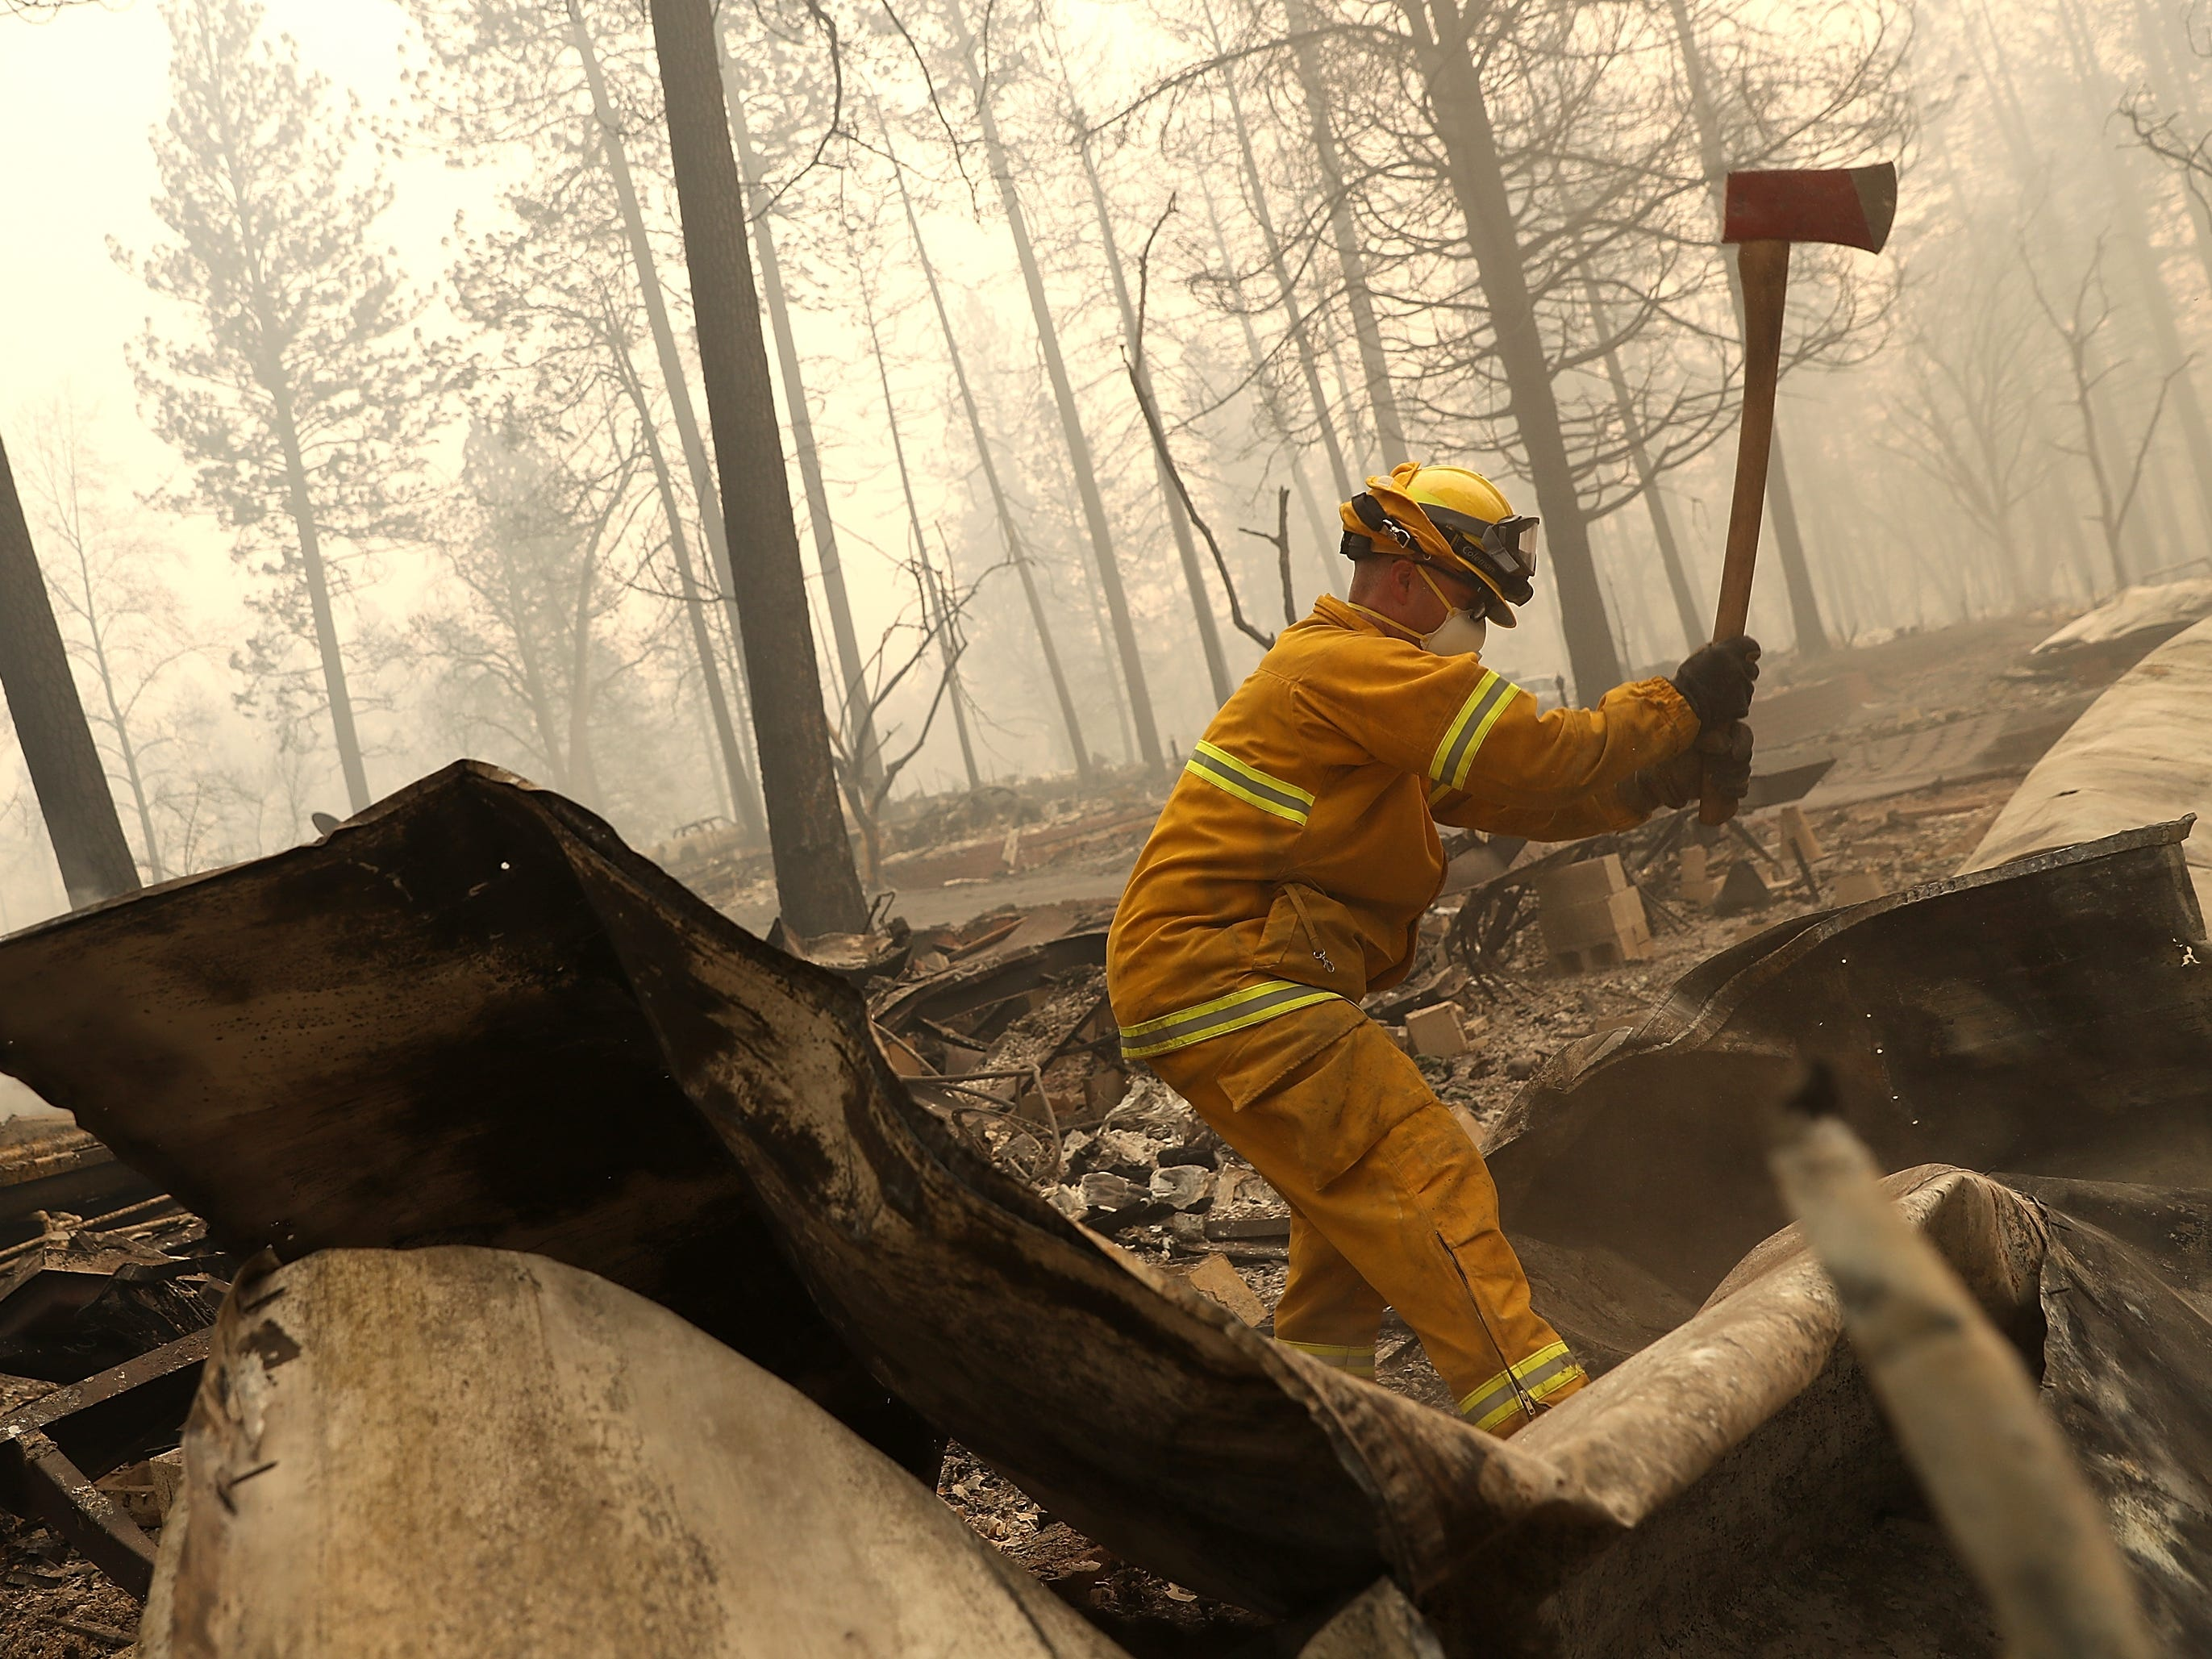 A San Francisco firefighter uses an axe to dismantle a burned mobile home as he searches for human remains at a mobile home park that was destroyed by the Camp Fire on Nov. 14, 2018 in Paradise, Calif.